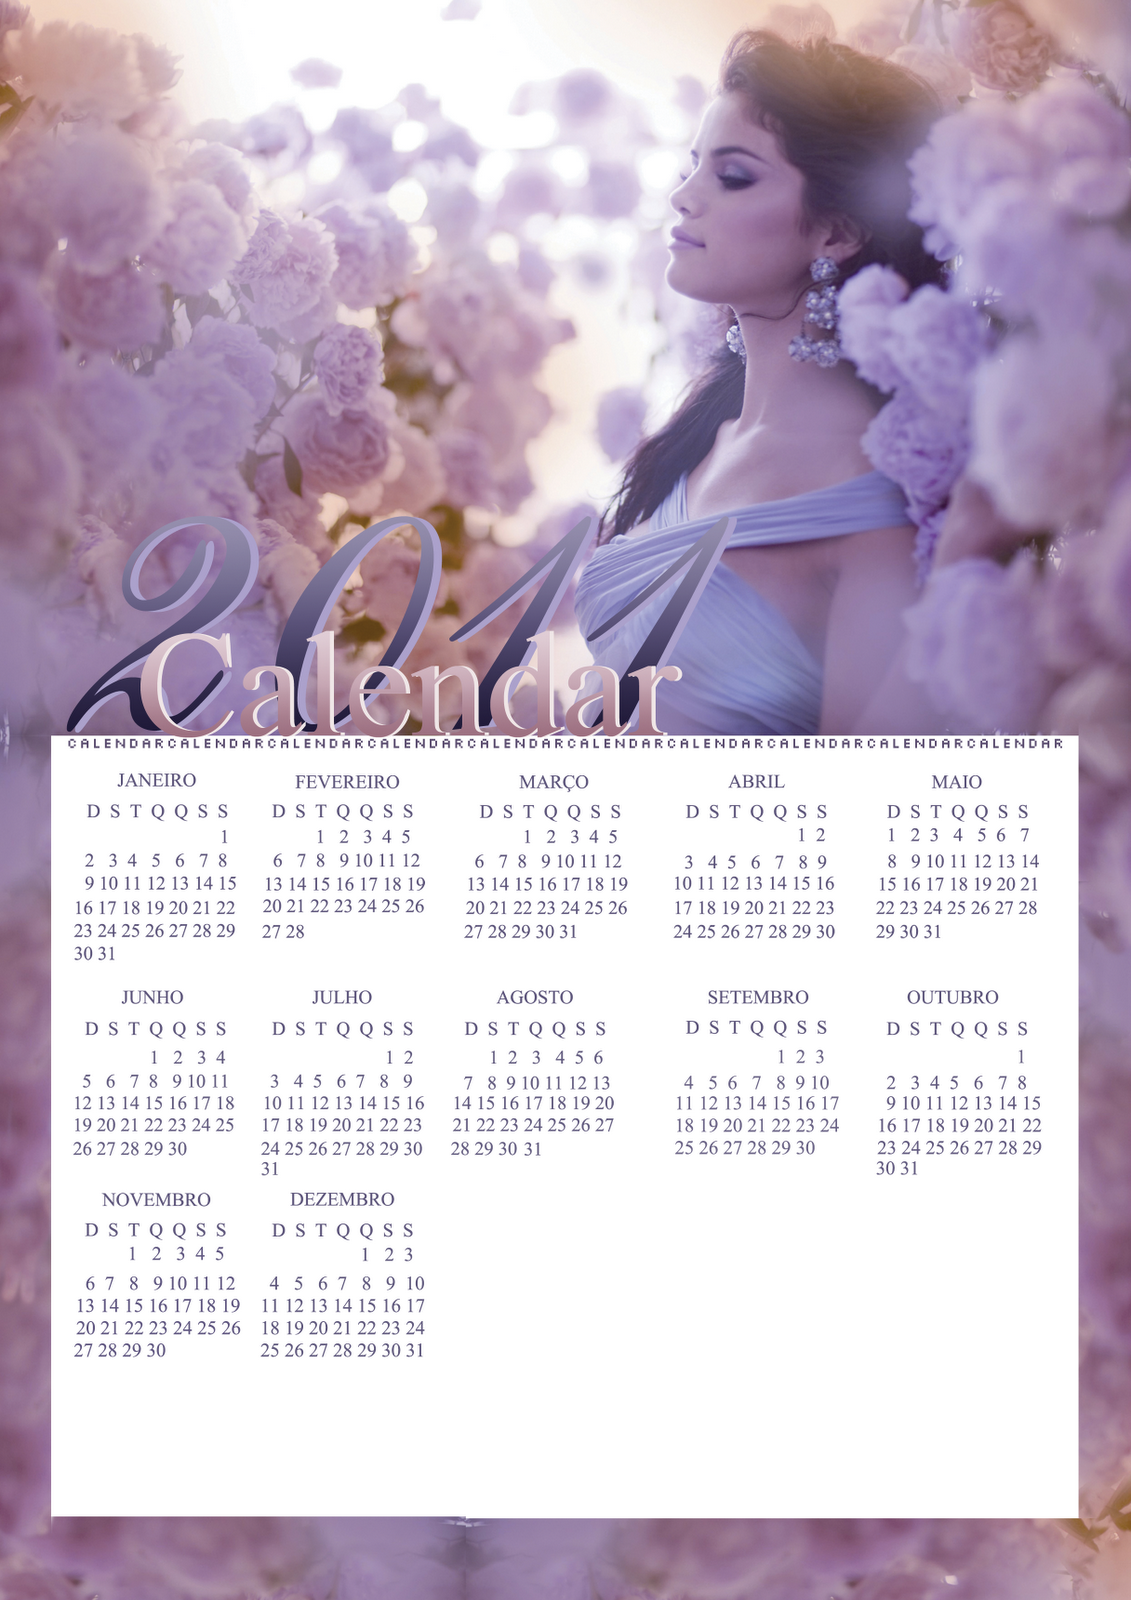 TeamSelena Chile: Calendario 2011 del Team